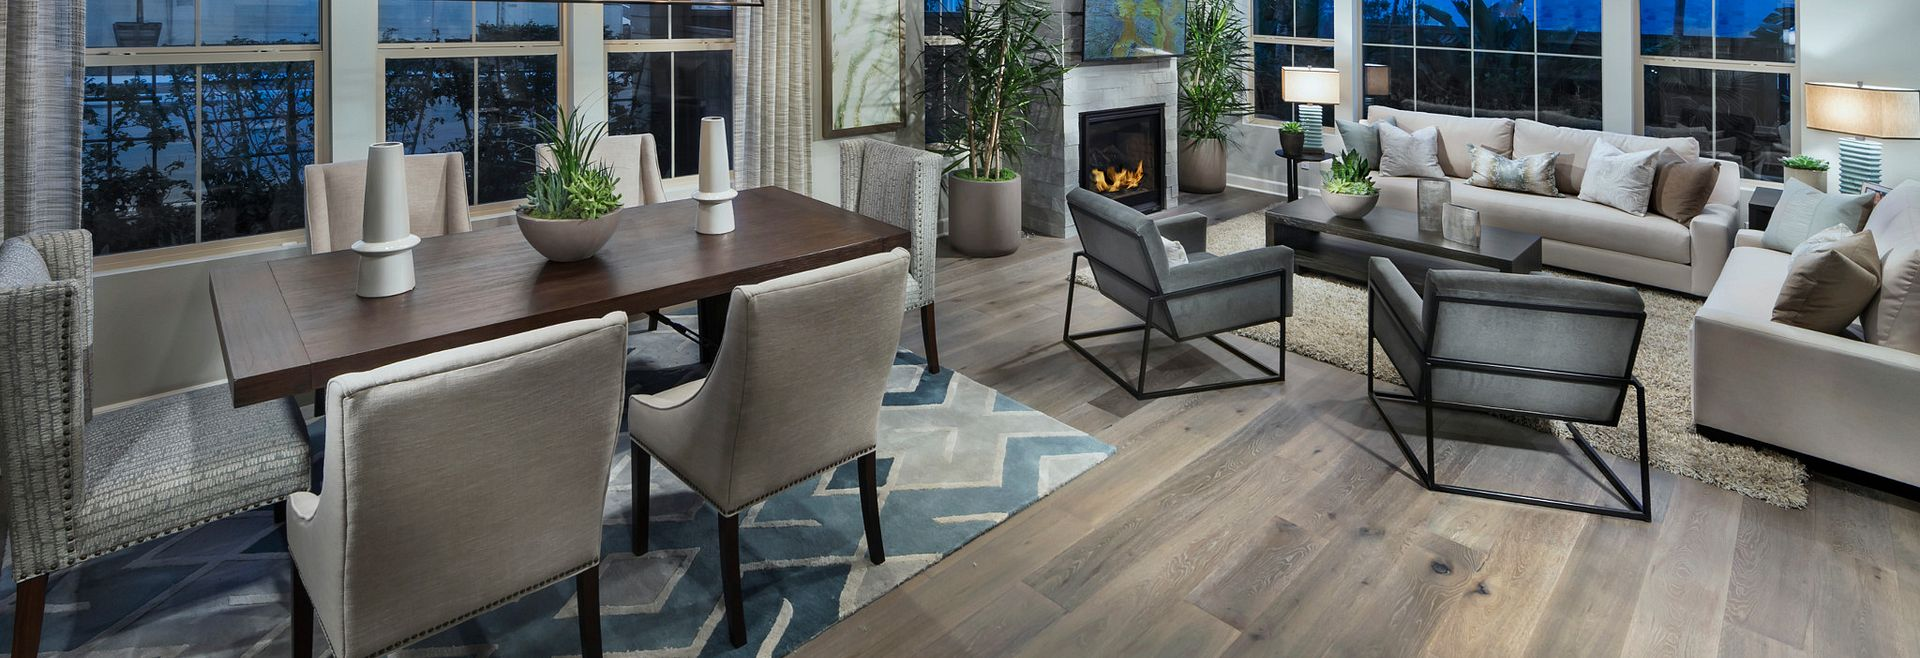 Plan 3 great room with wood floors, dining table, surrounding chairs, area rug, fireplace, sofa, and club chairs